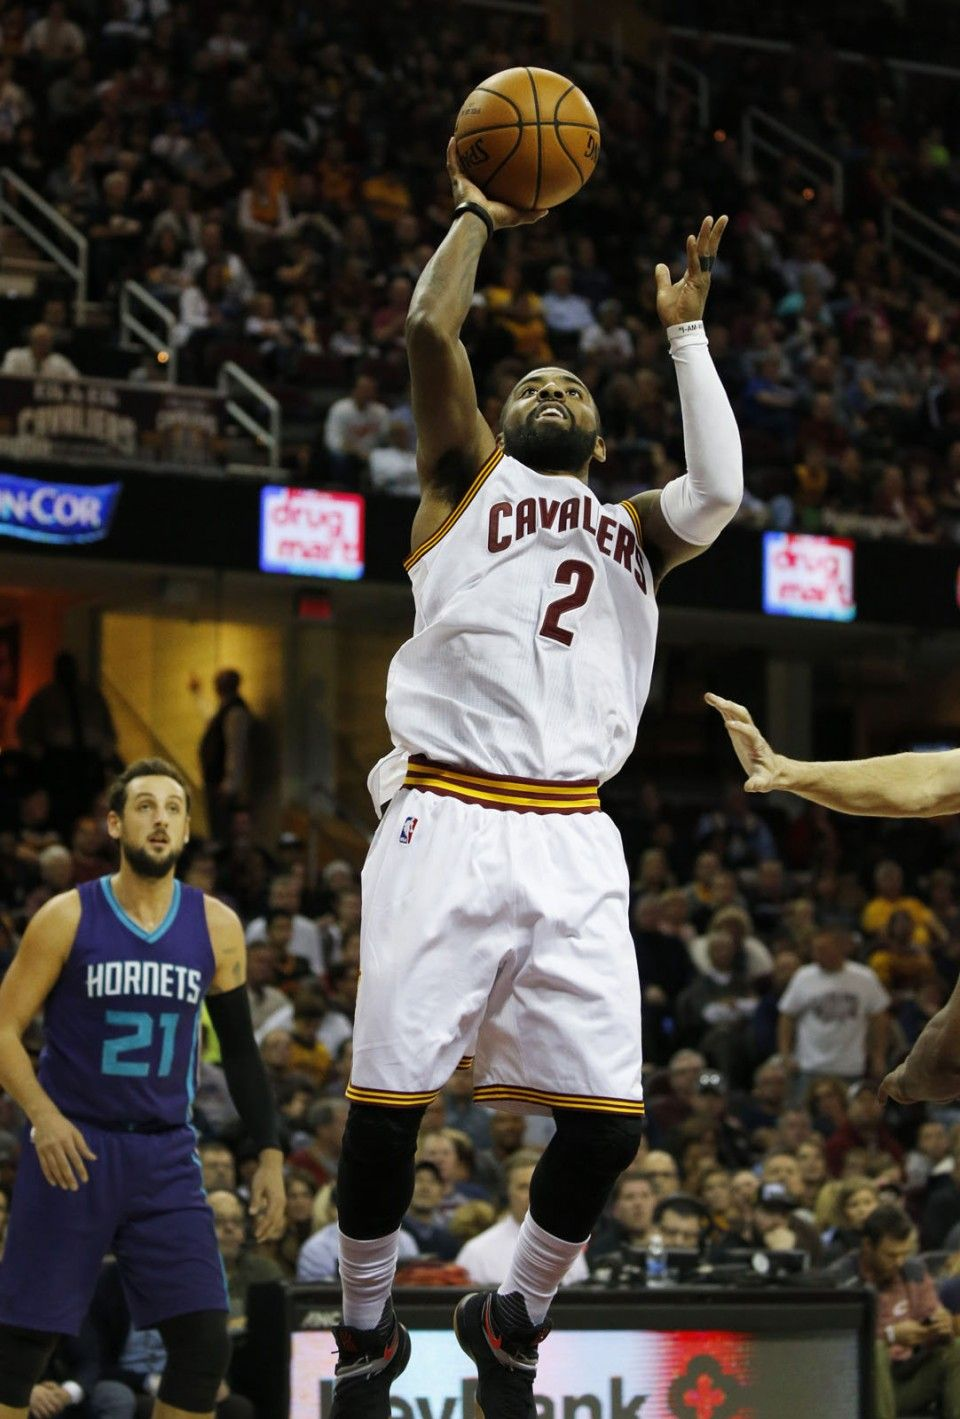 The responsibility used to belong to Kyrie Irving, but Lue has made a subtle switch in hopes of playing better at the start of the fourth quarter.